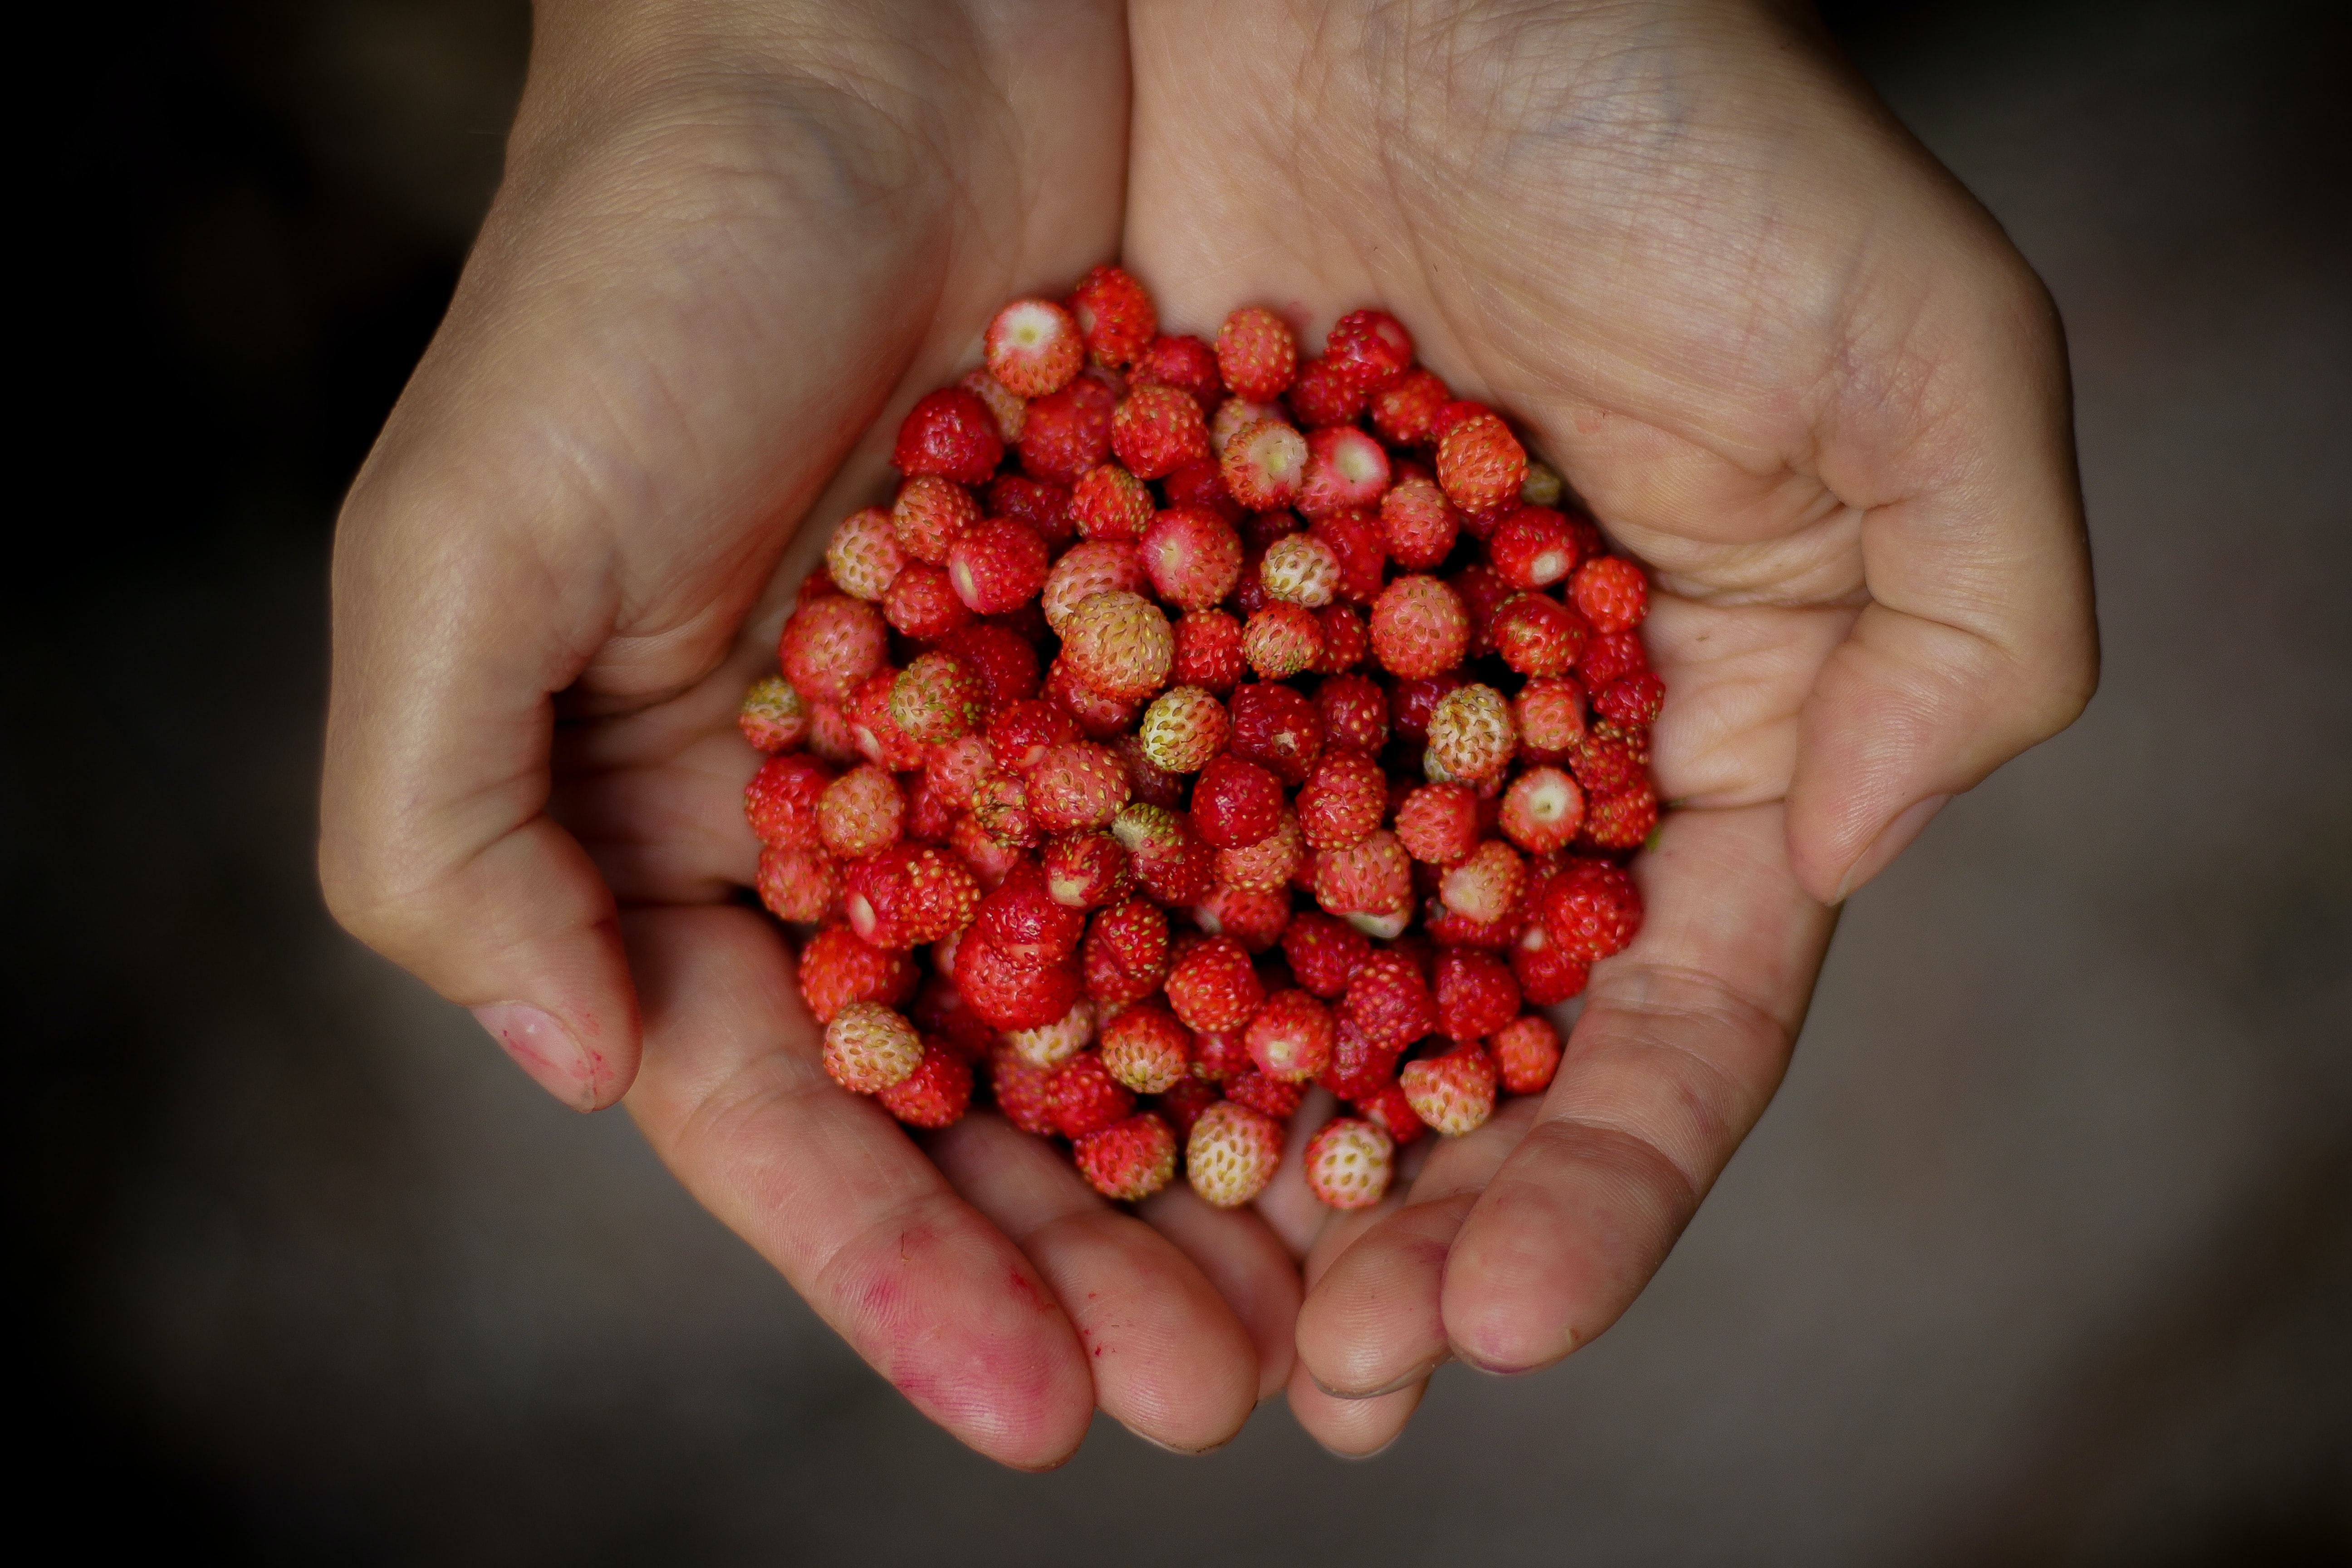 close-up photo of person holding red fruits